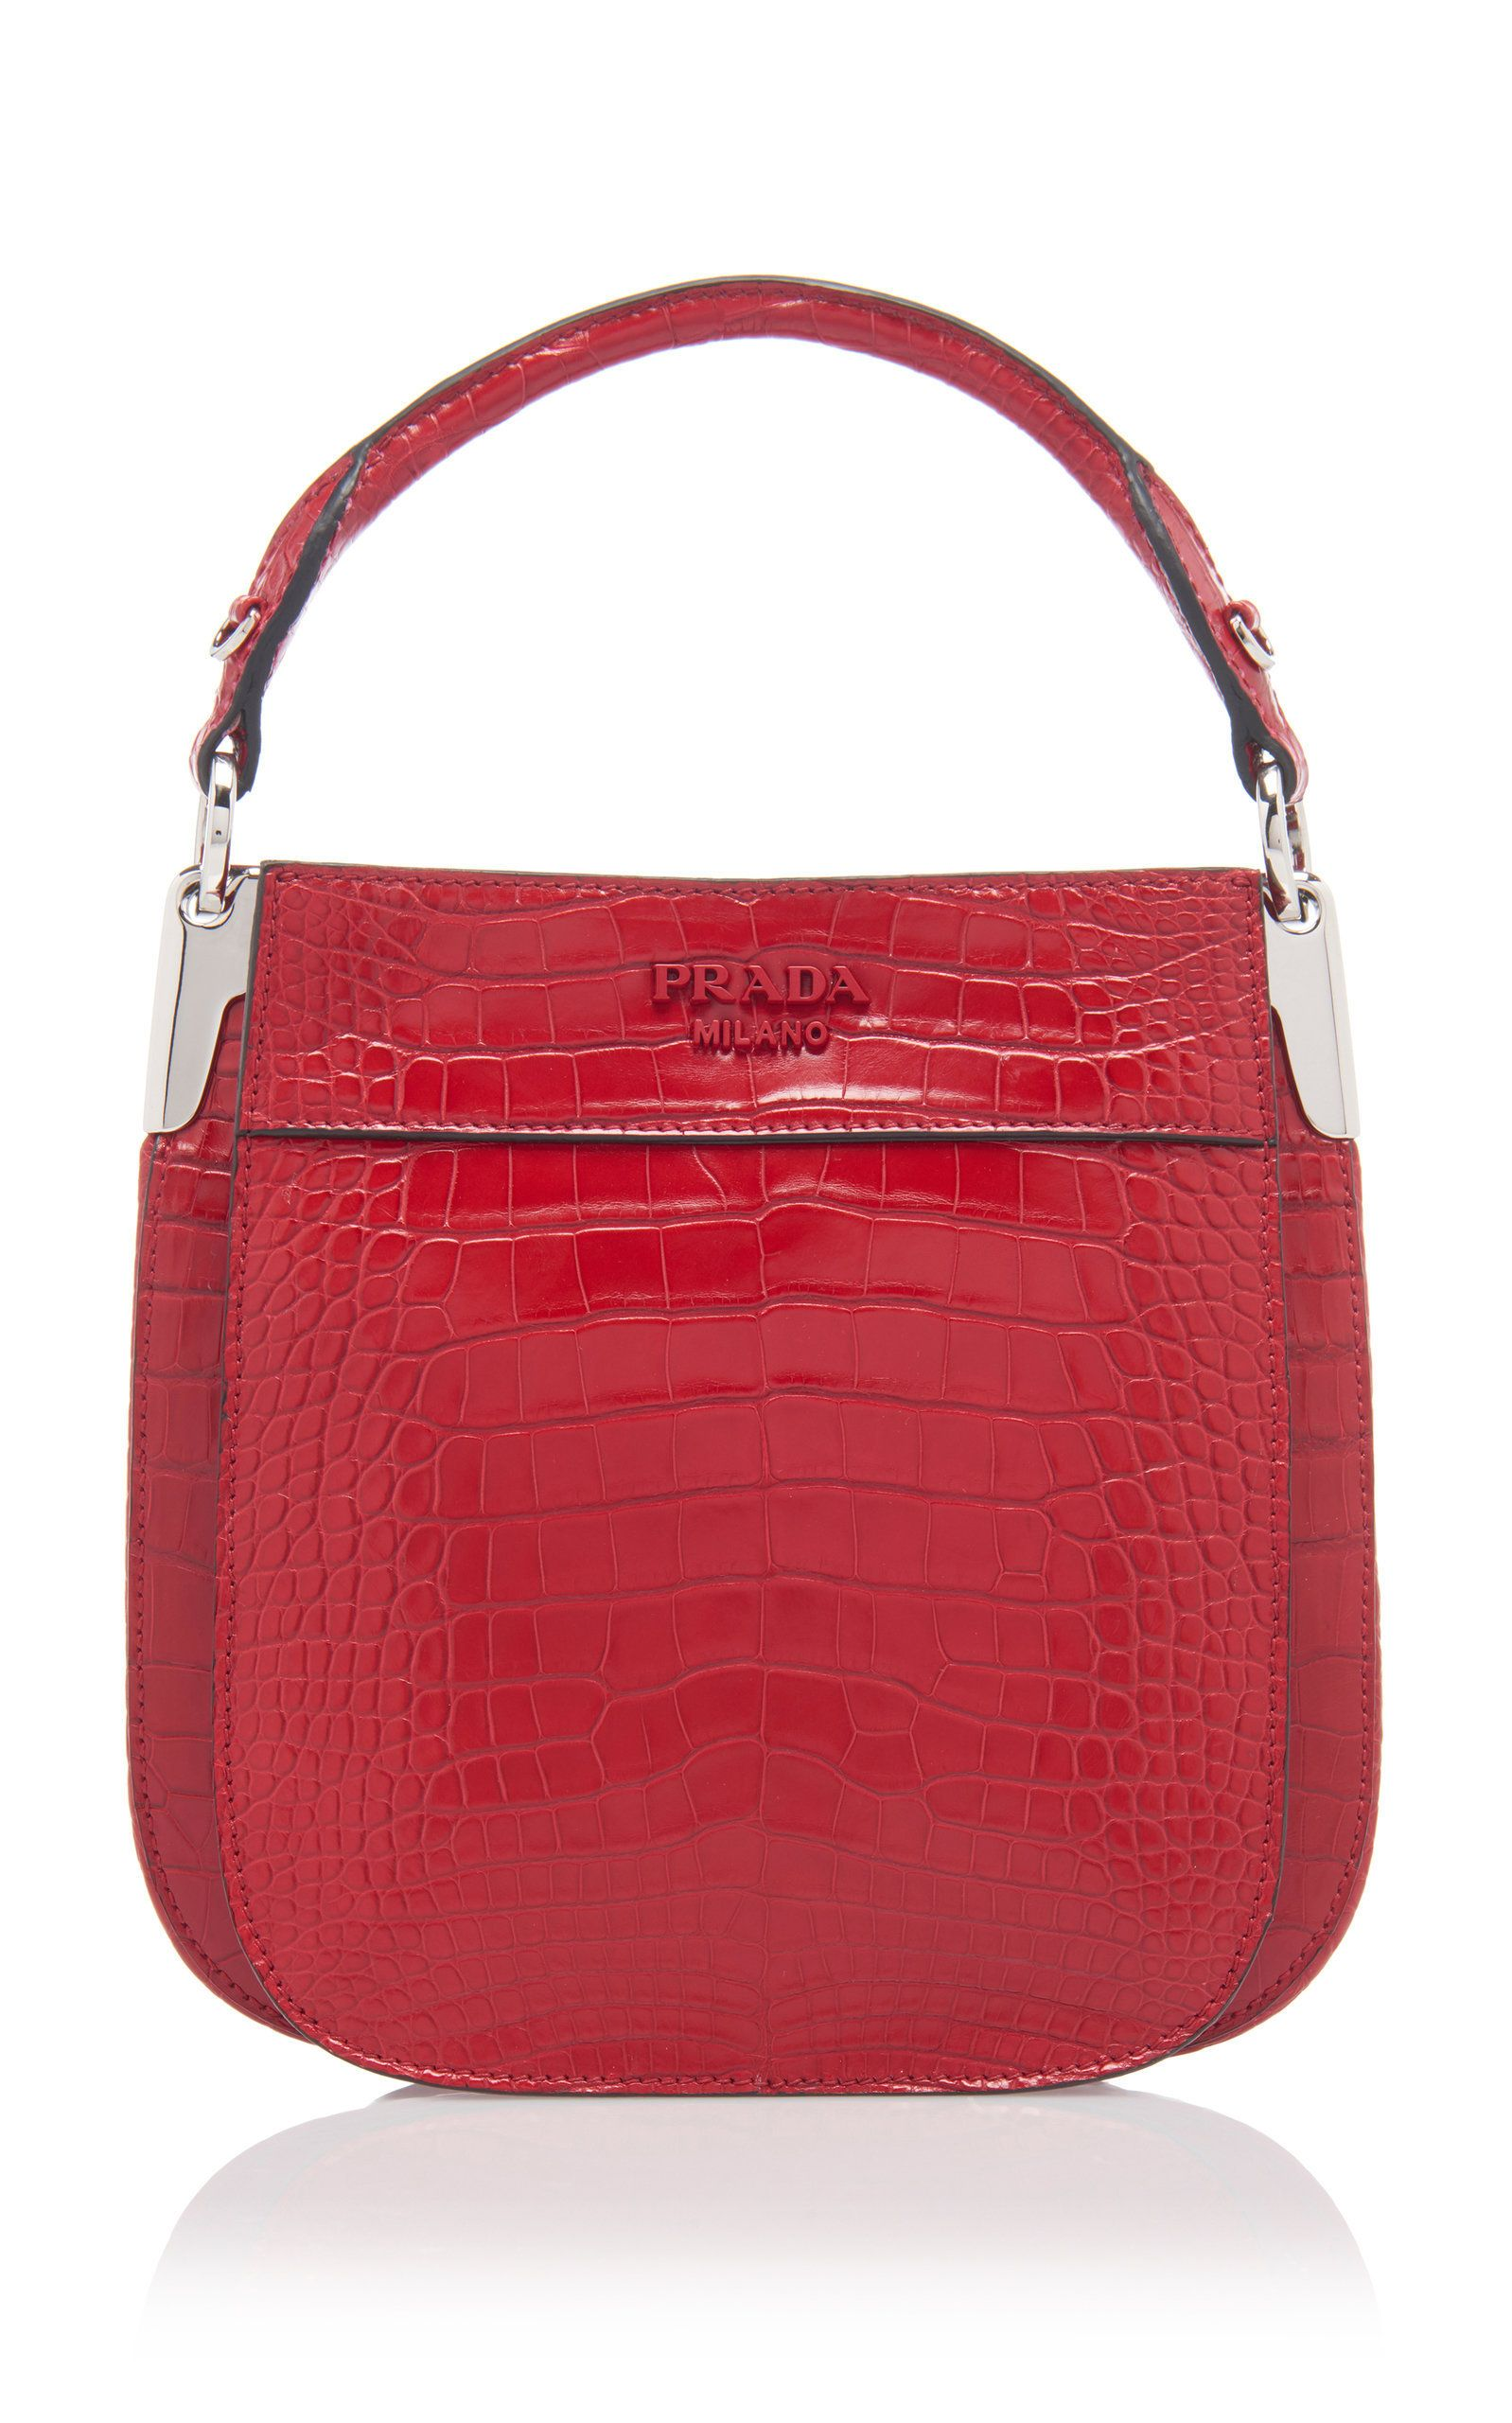 Krokodillen Tas Crocodile Bucket Bag Prada